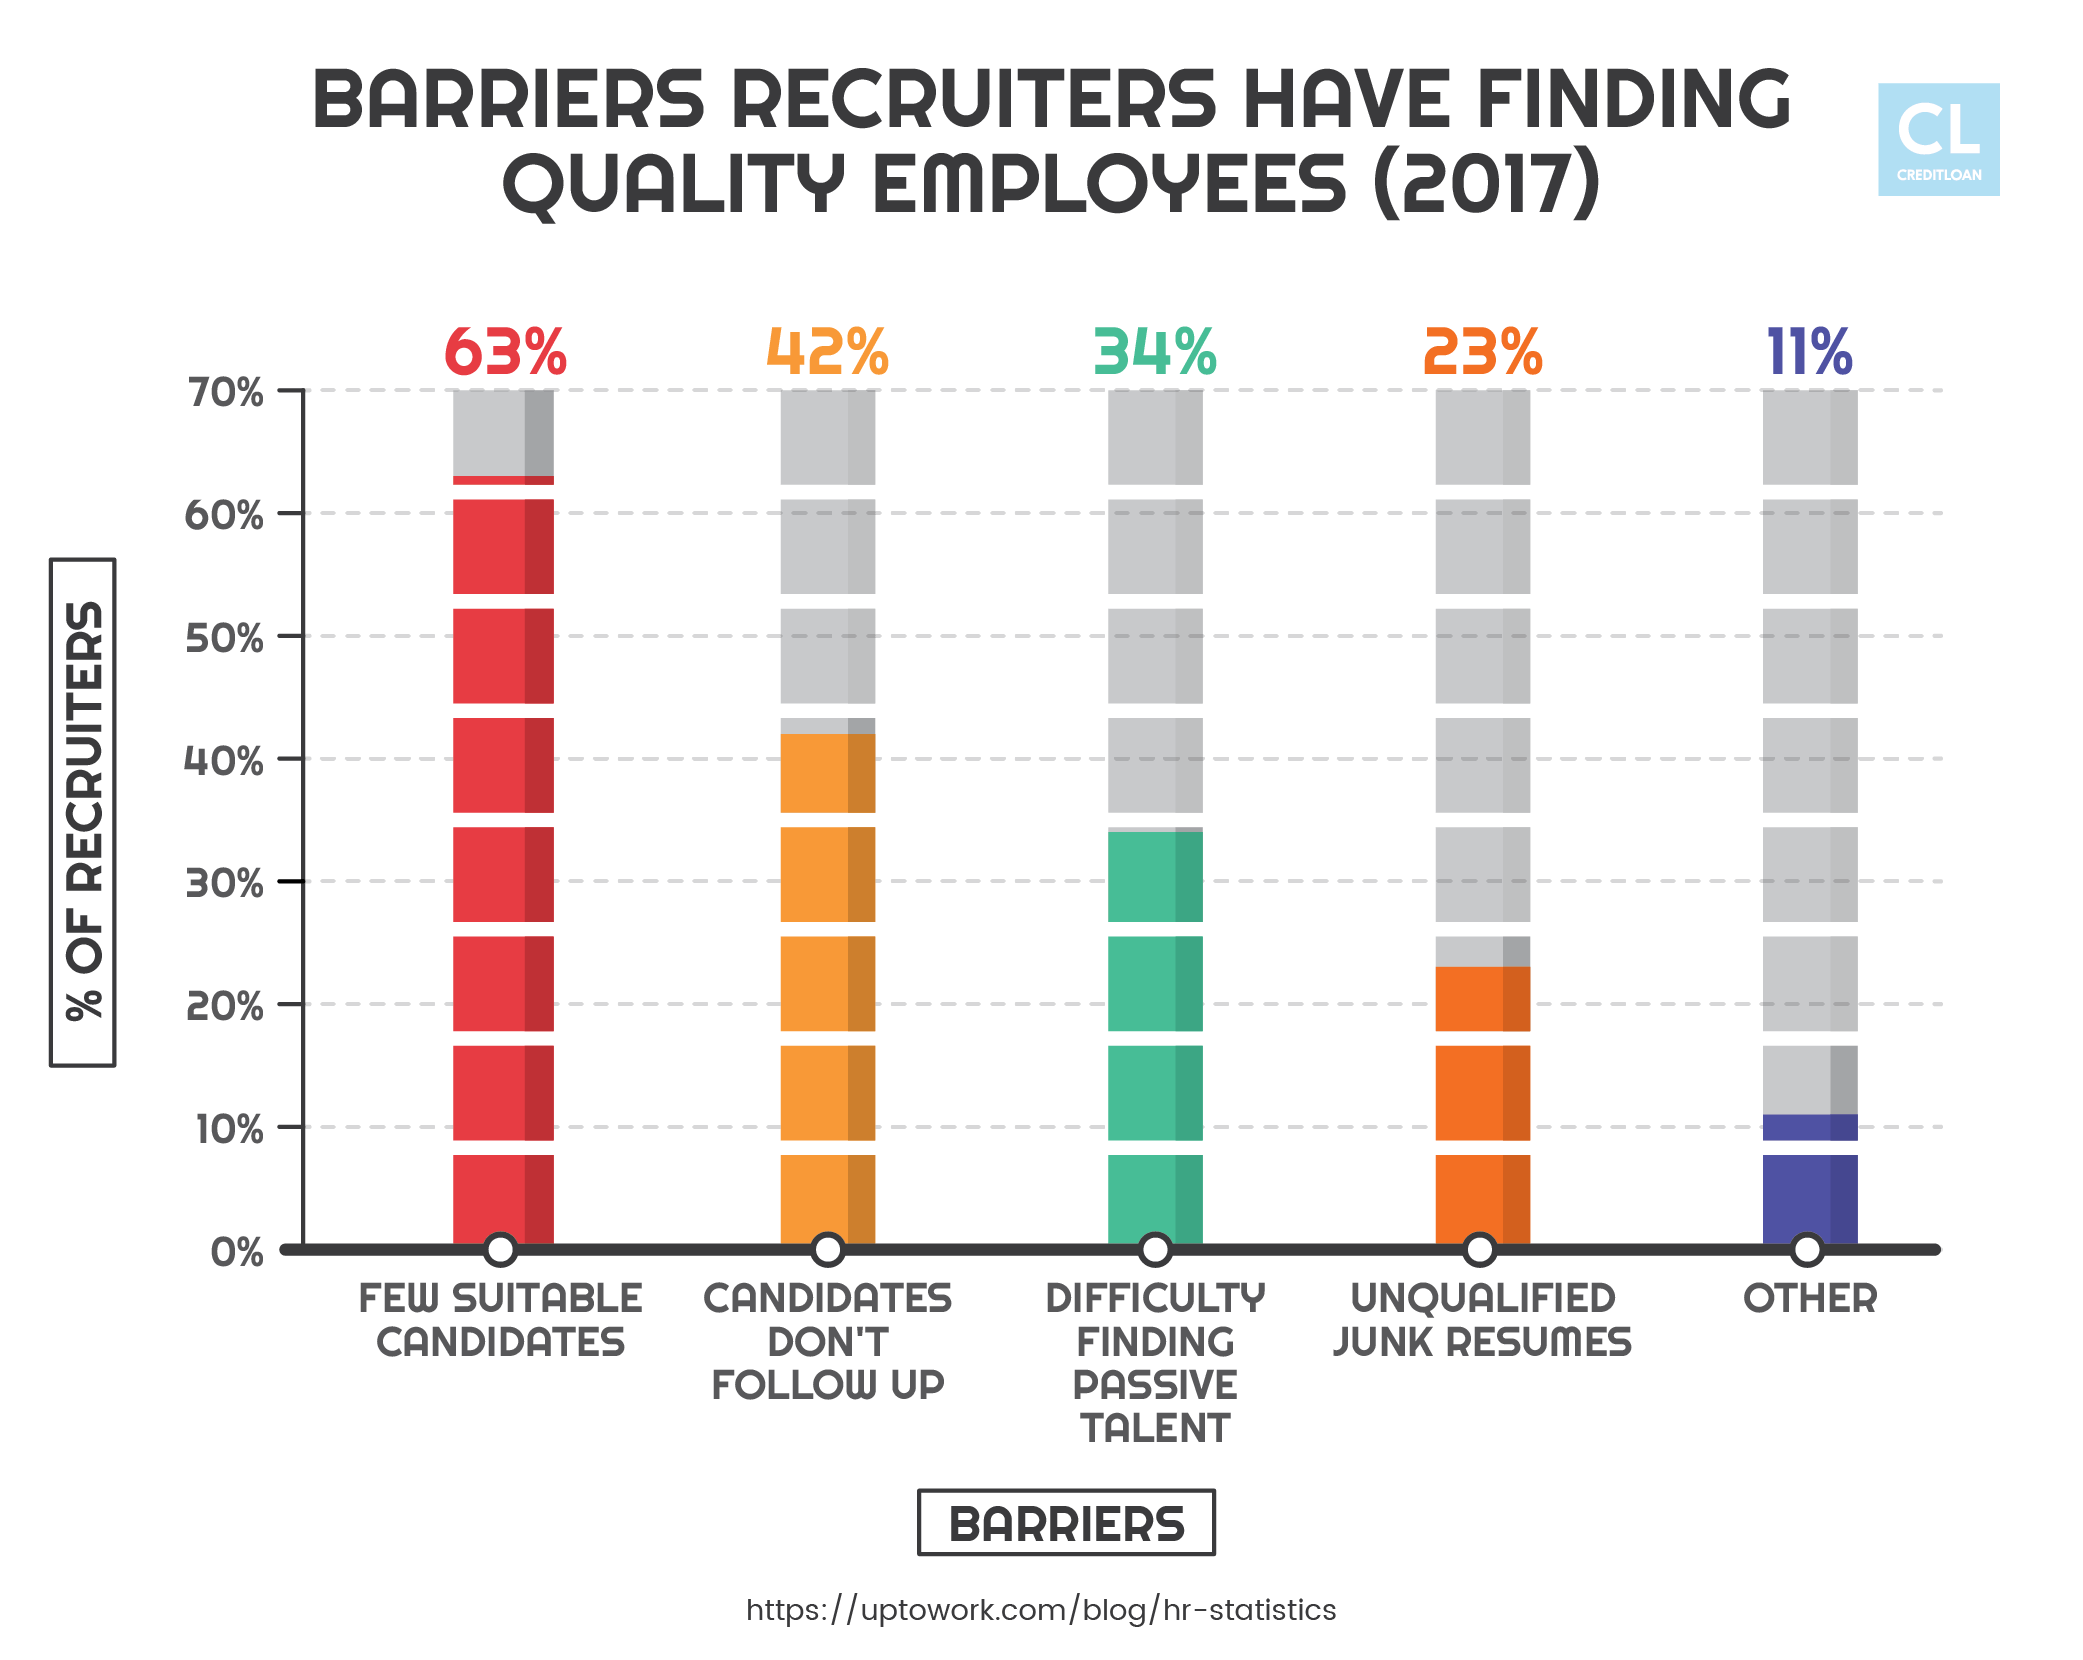 Barriers recruiters have in finding quality employees in 2017